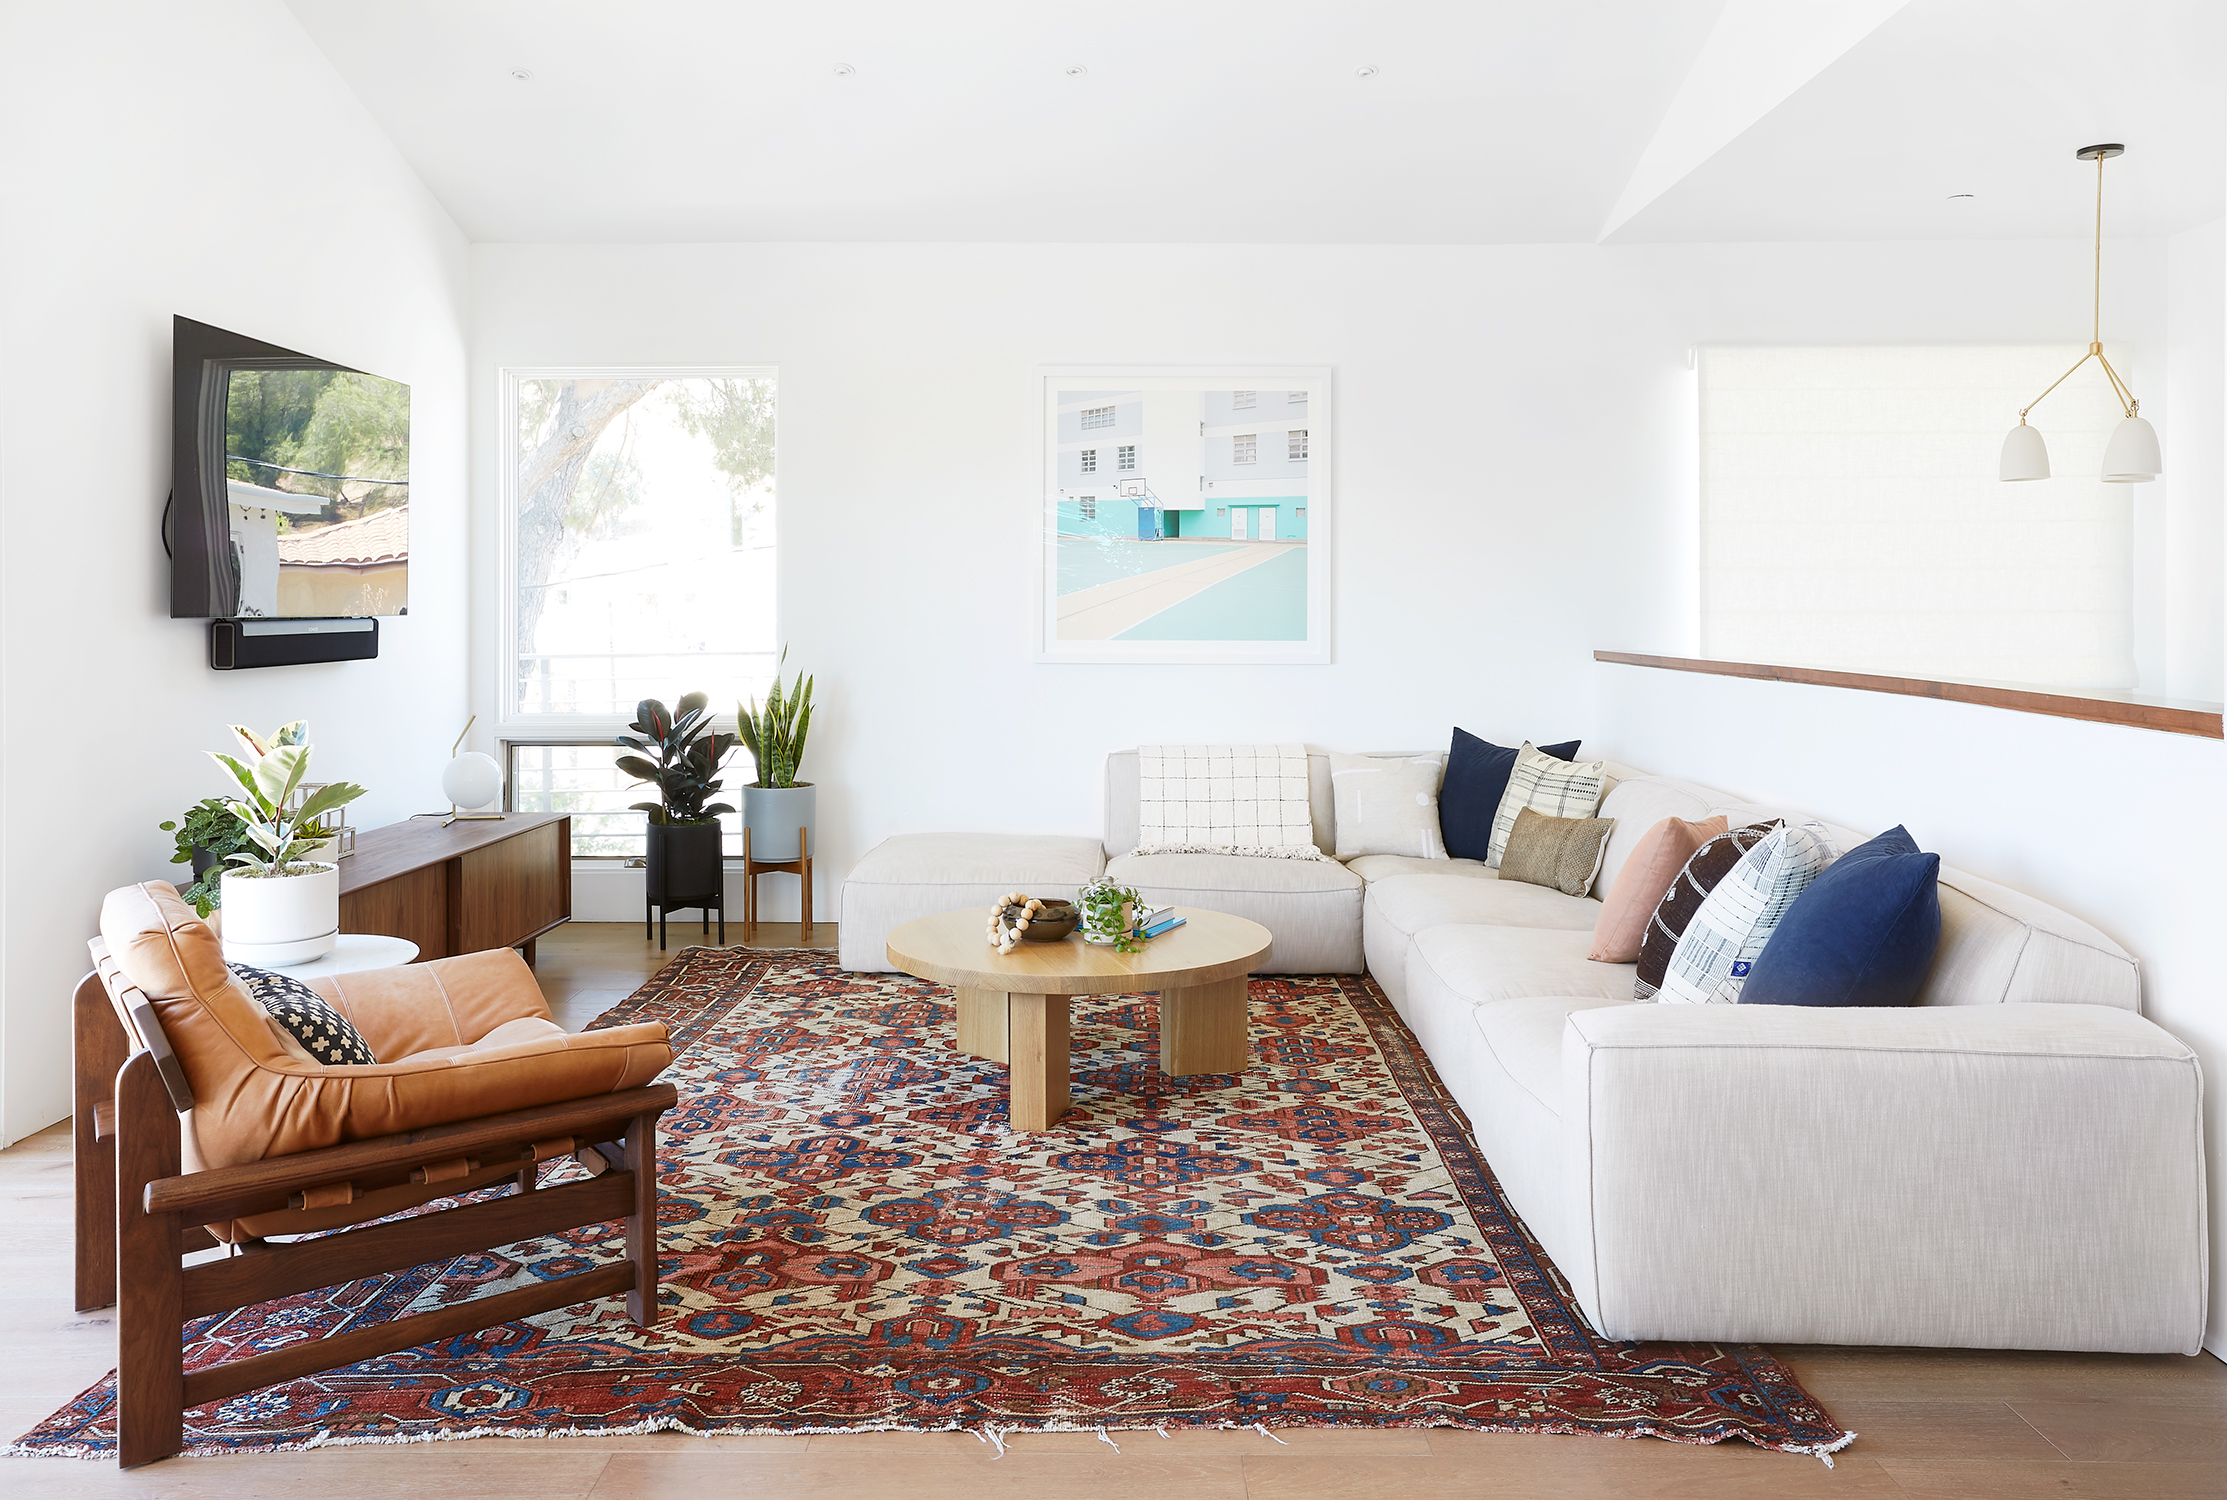 Interior design by Natalie Myers